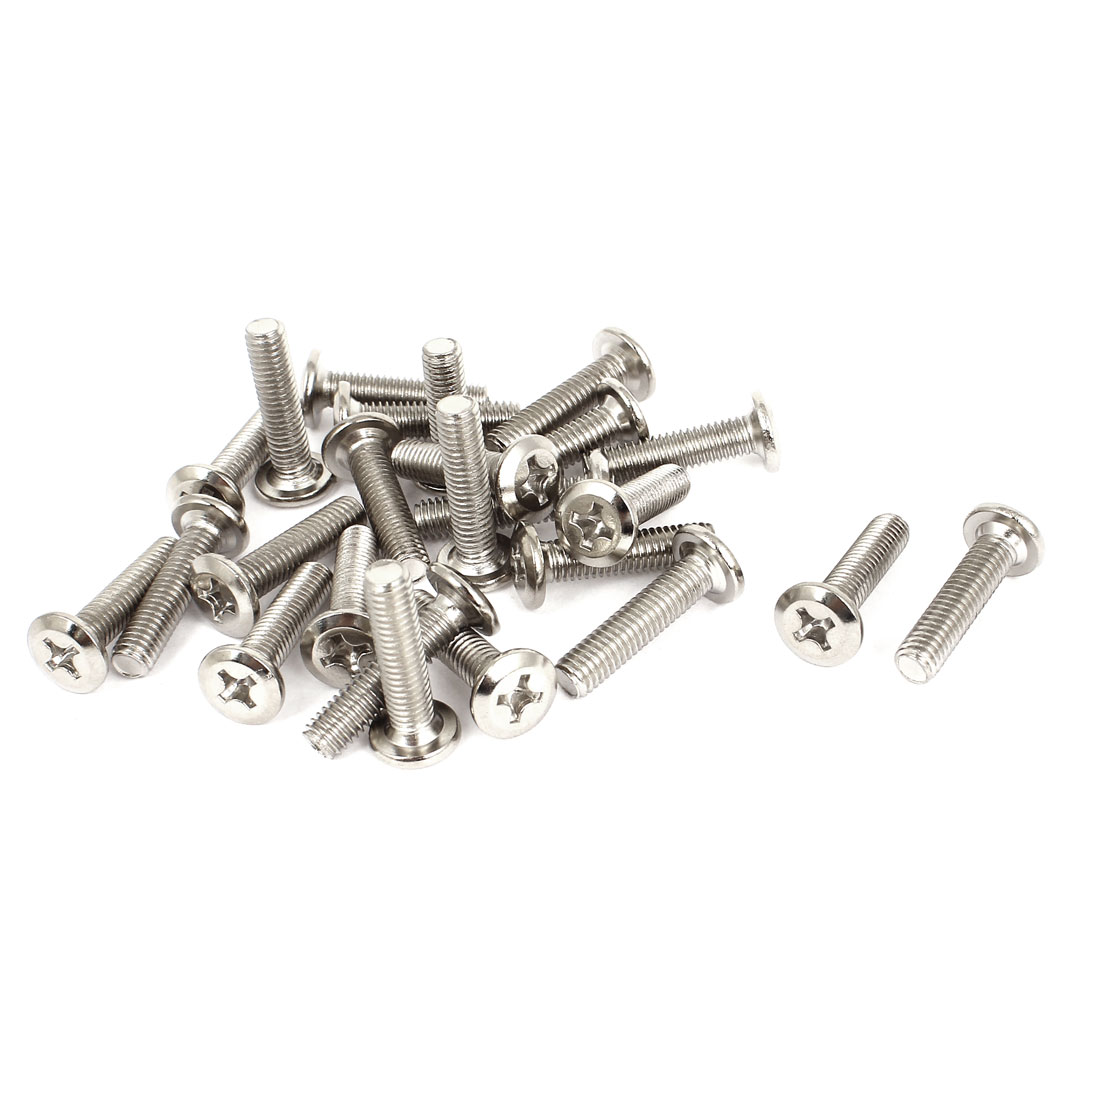 25 Pcs M6x25mm Phillips Countersunk Head Socket Bolts Machine Screws Fasteners